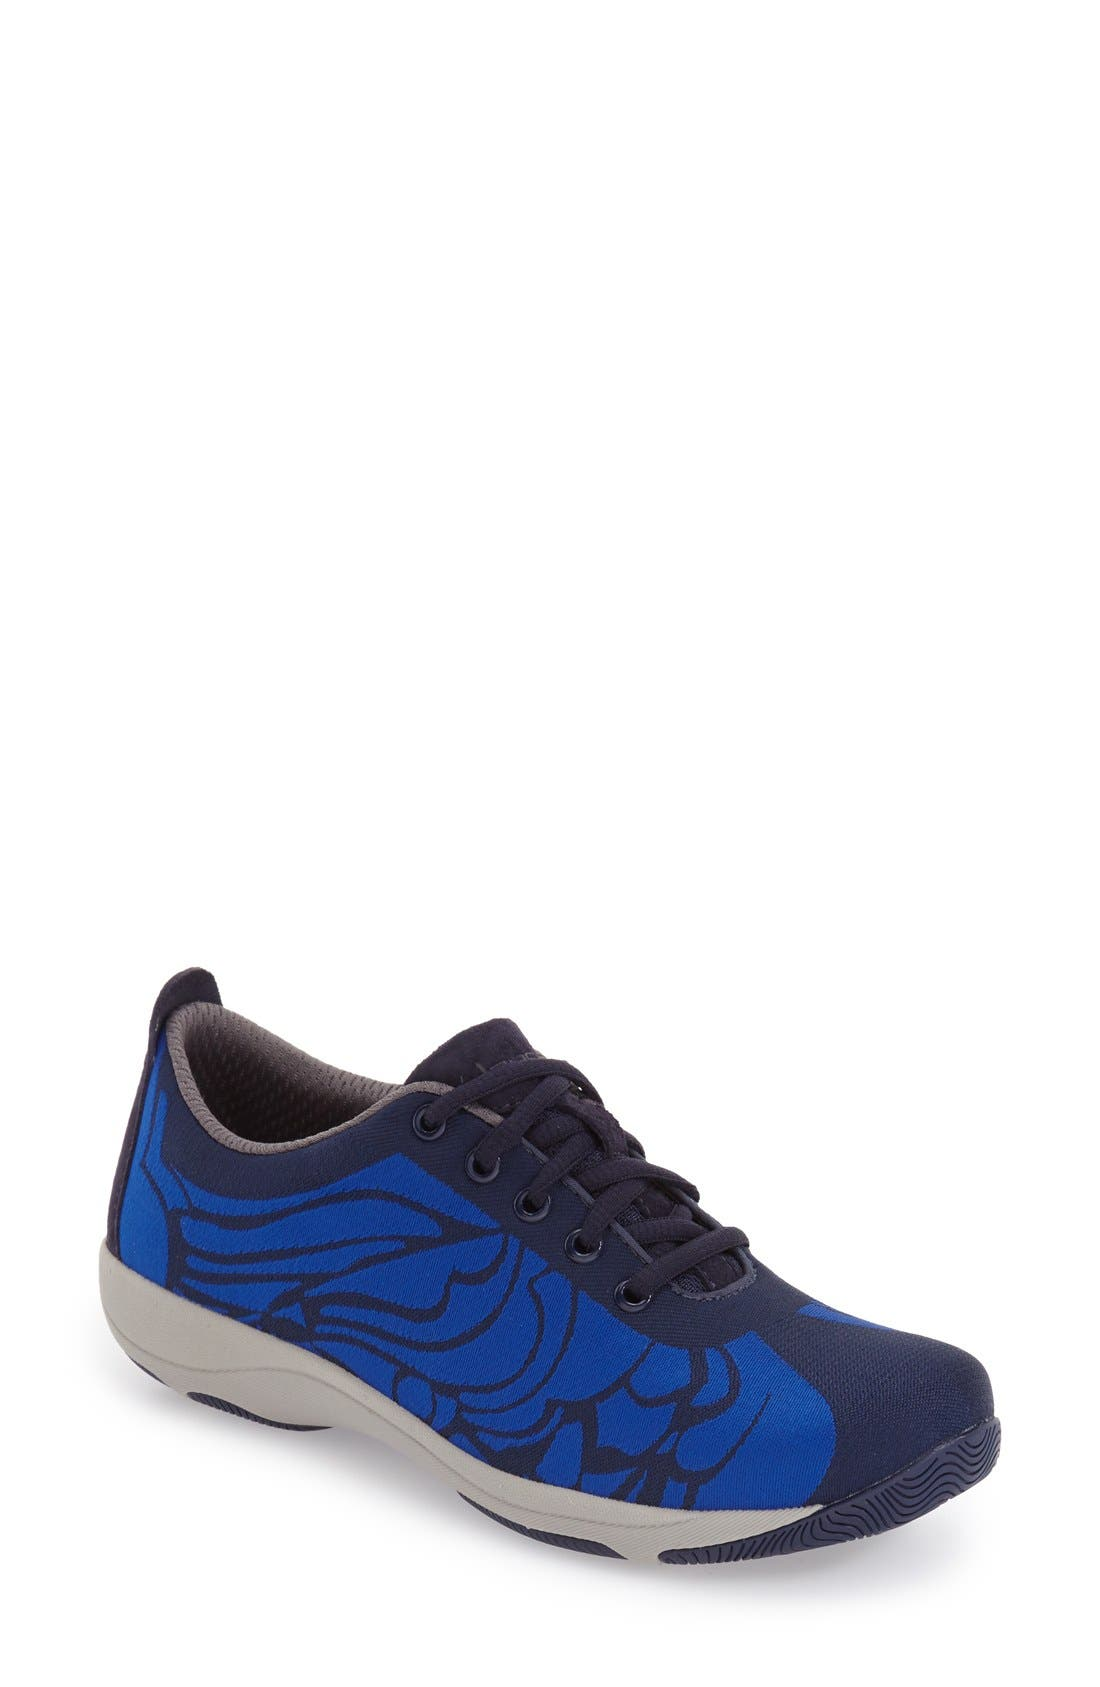 'Hanna' Sneaker,                         Main,                         color, Blue Fabric